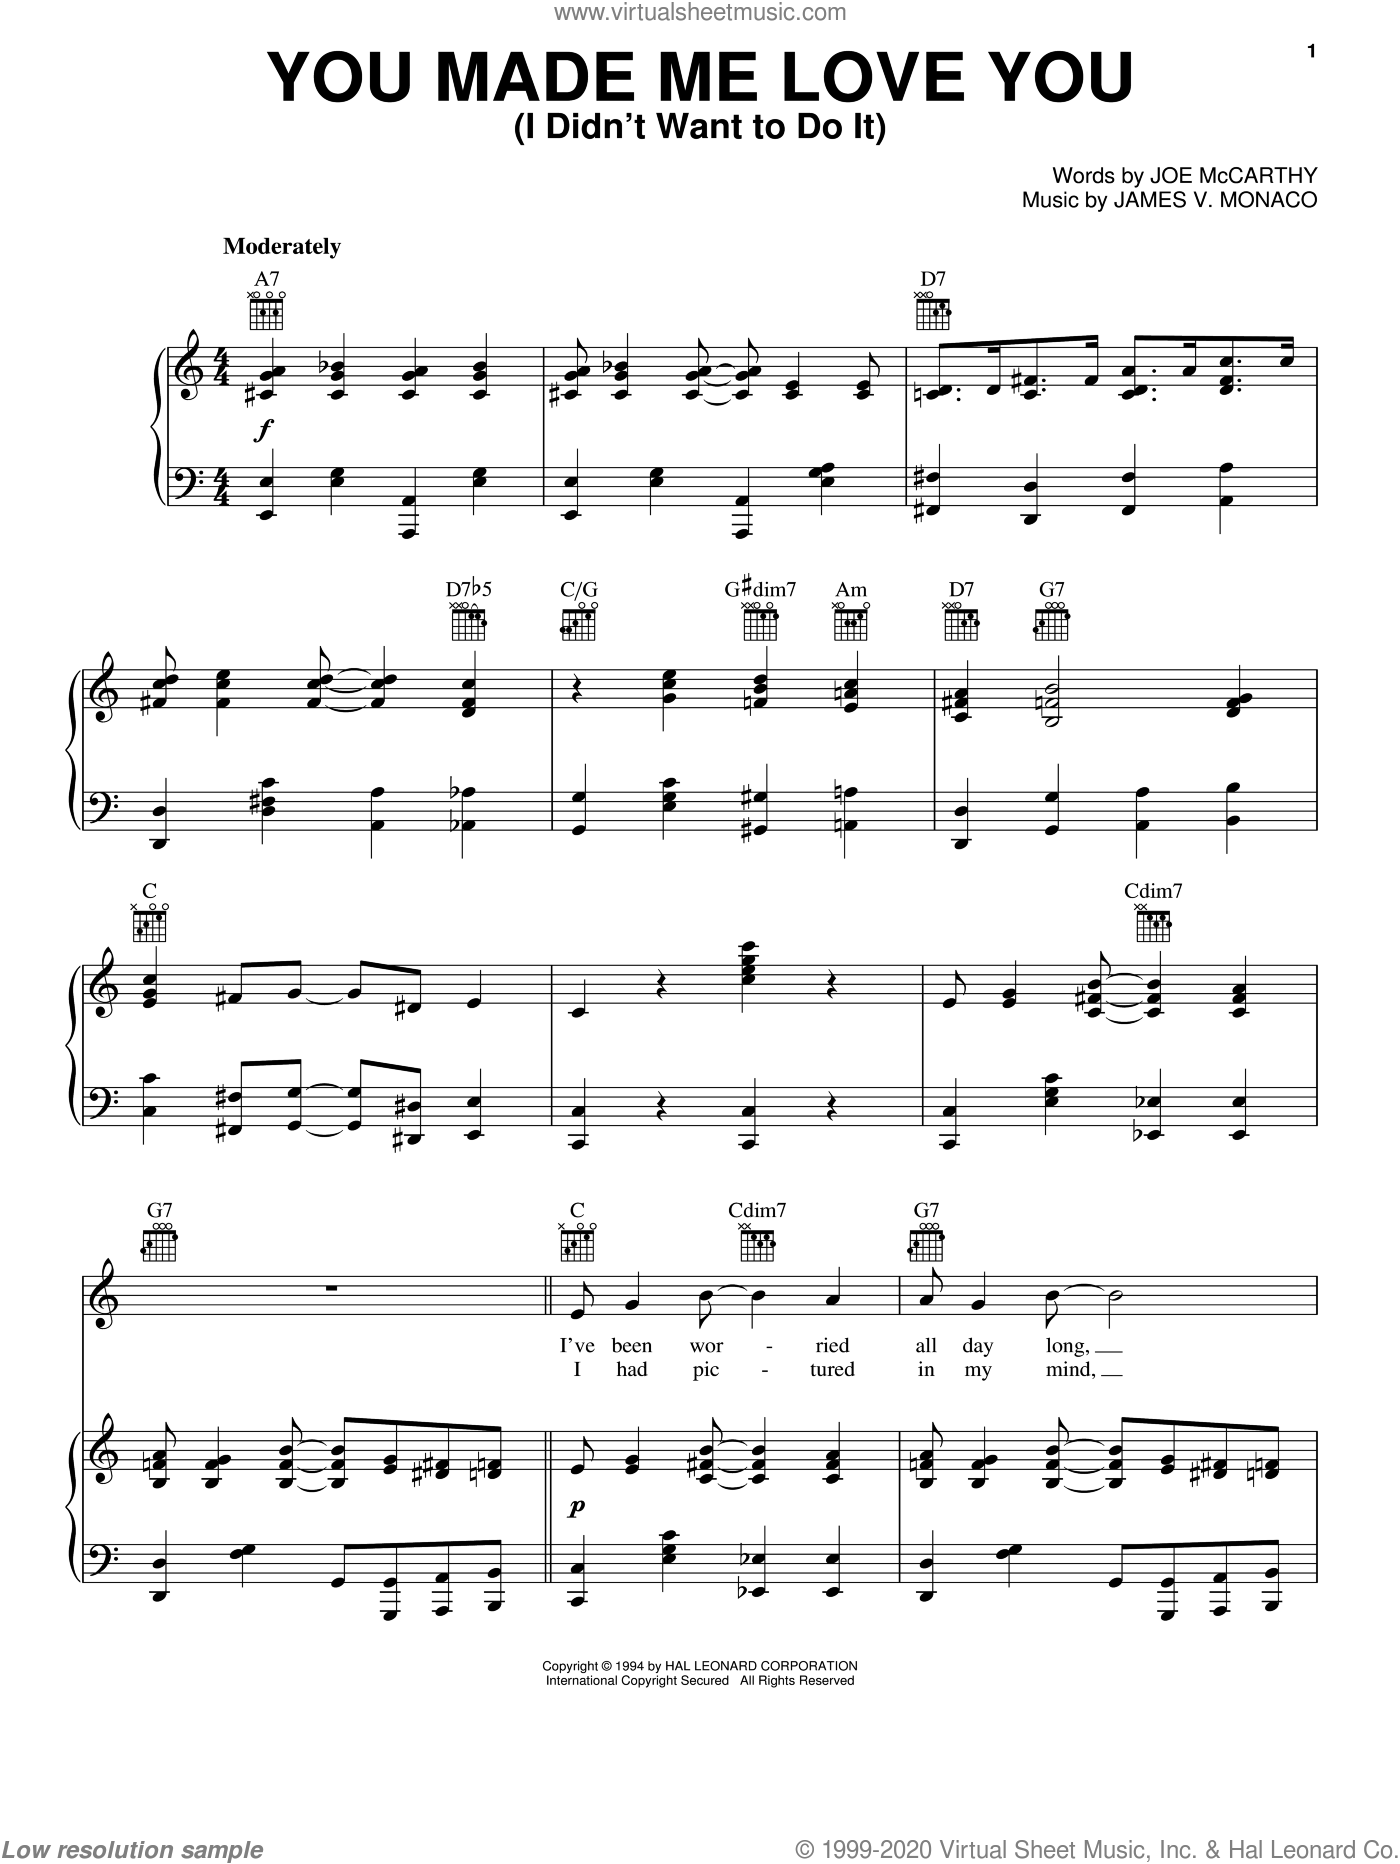 You Made Me Love You (I Didn't Want To Do It) sheet music for voice, piano or guitar by James Monaco